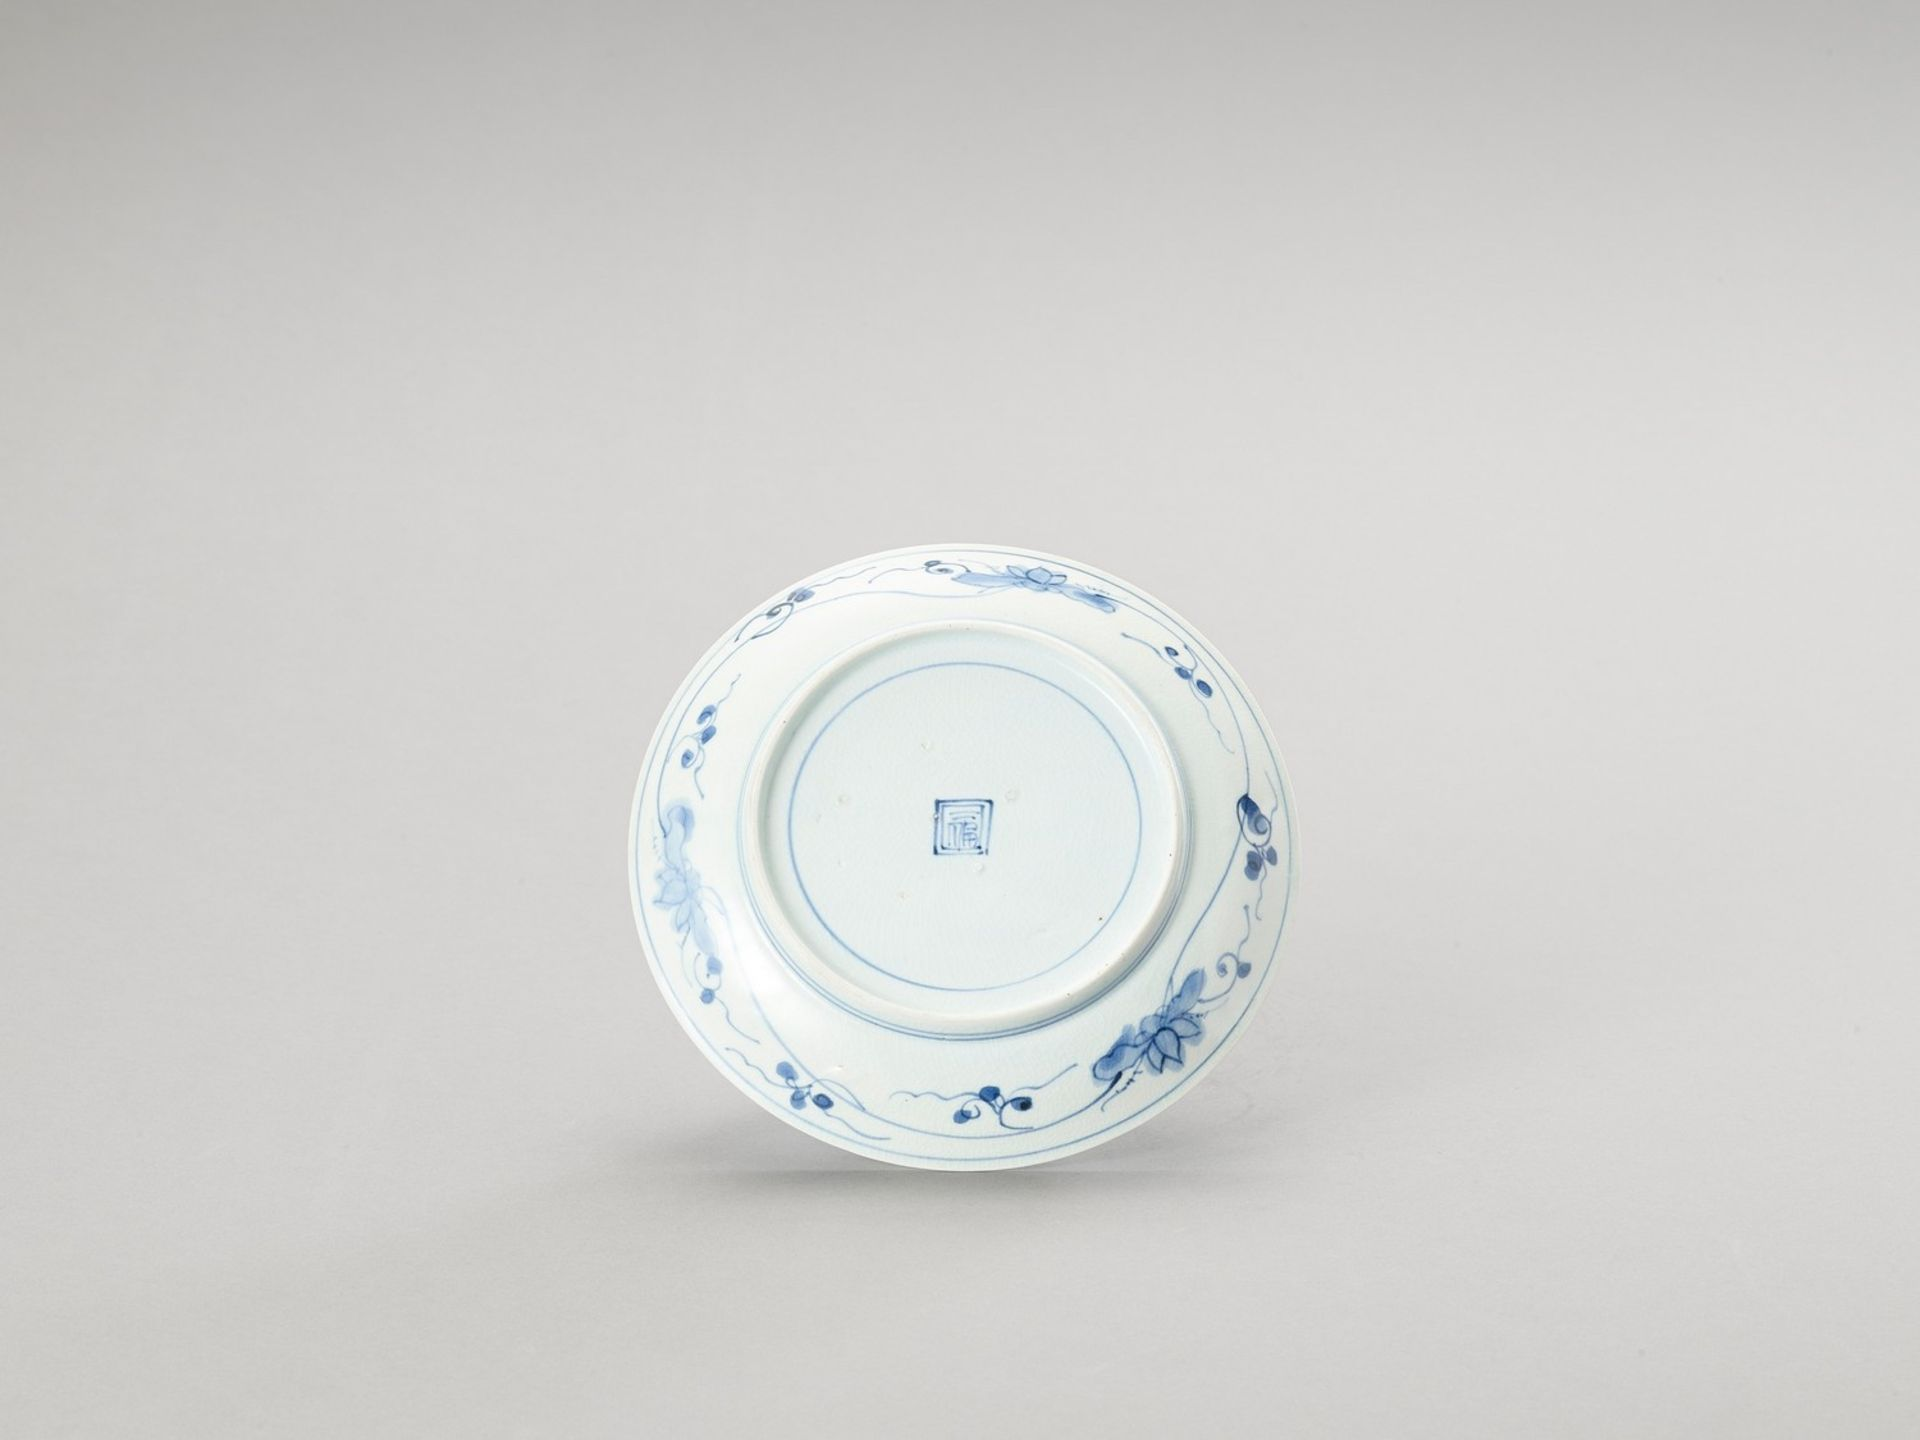 A BLUE AND WHITE PORCELAIN DISH - Image 3 of 4